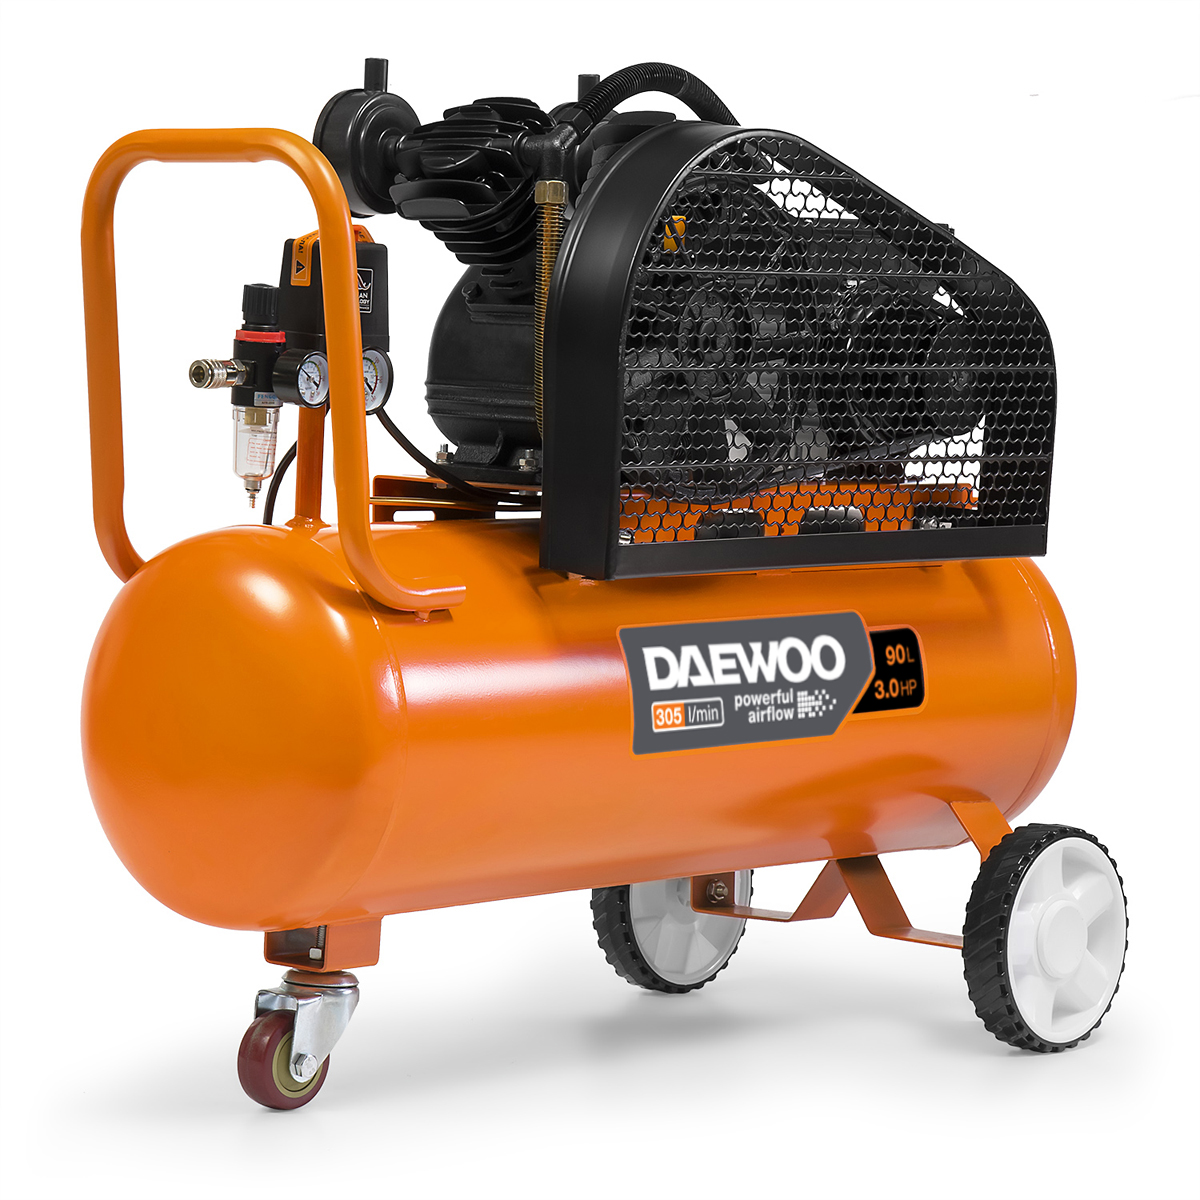 Air Compressor DAEWOO DAC 90B